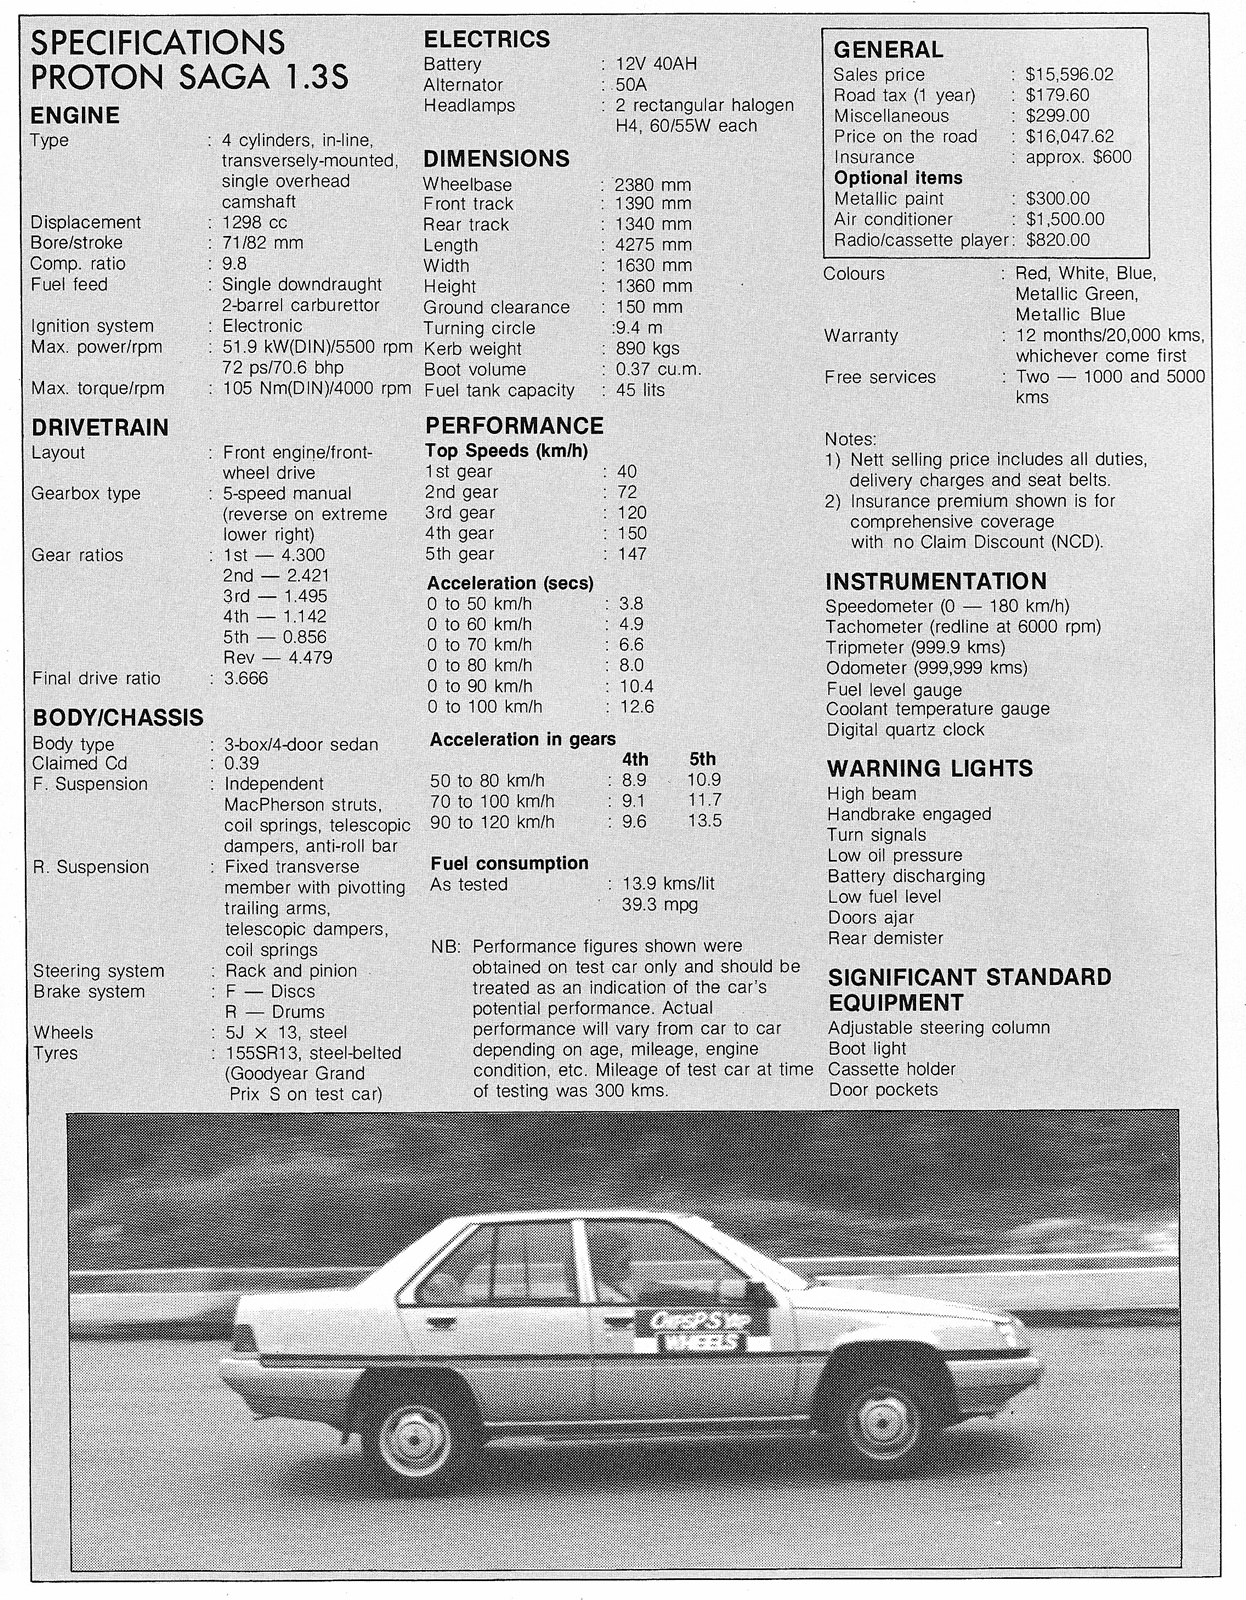 1985 Proton Saga specifications (1)